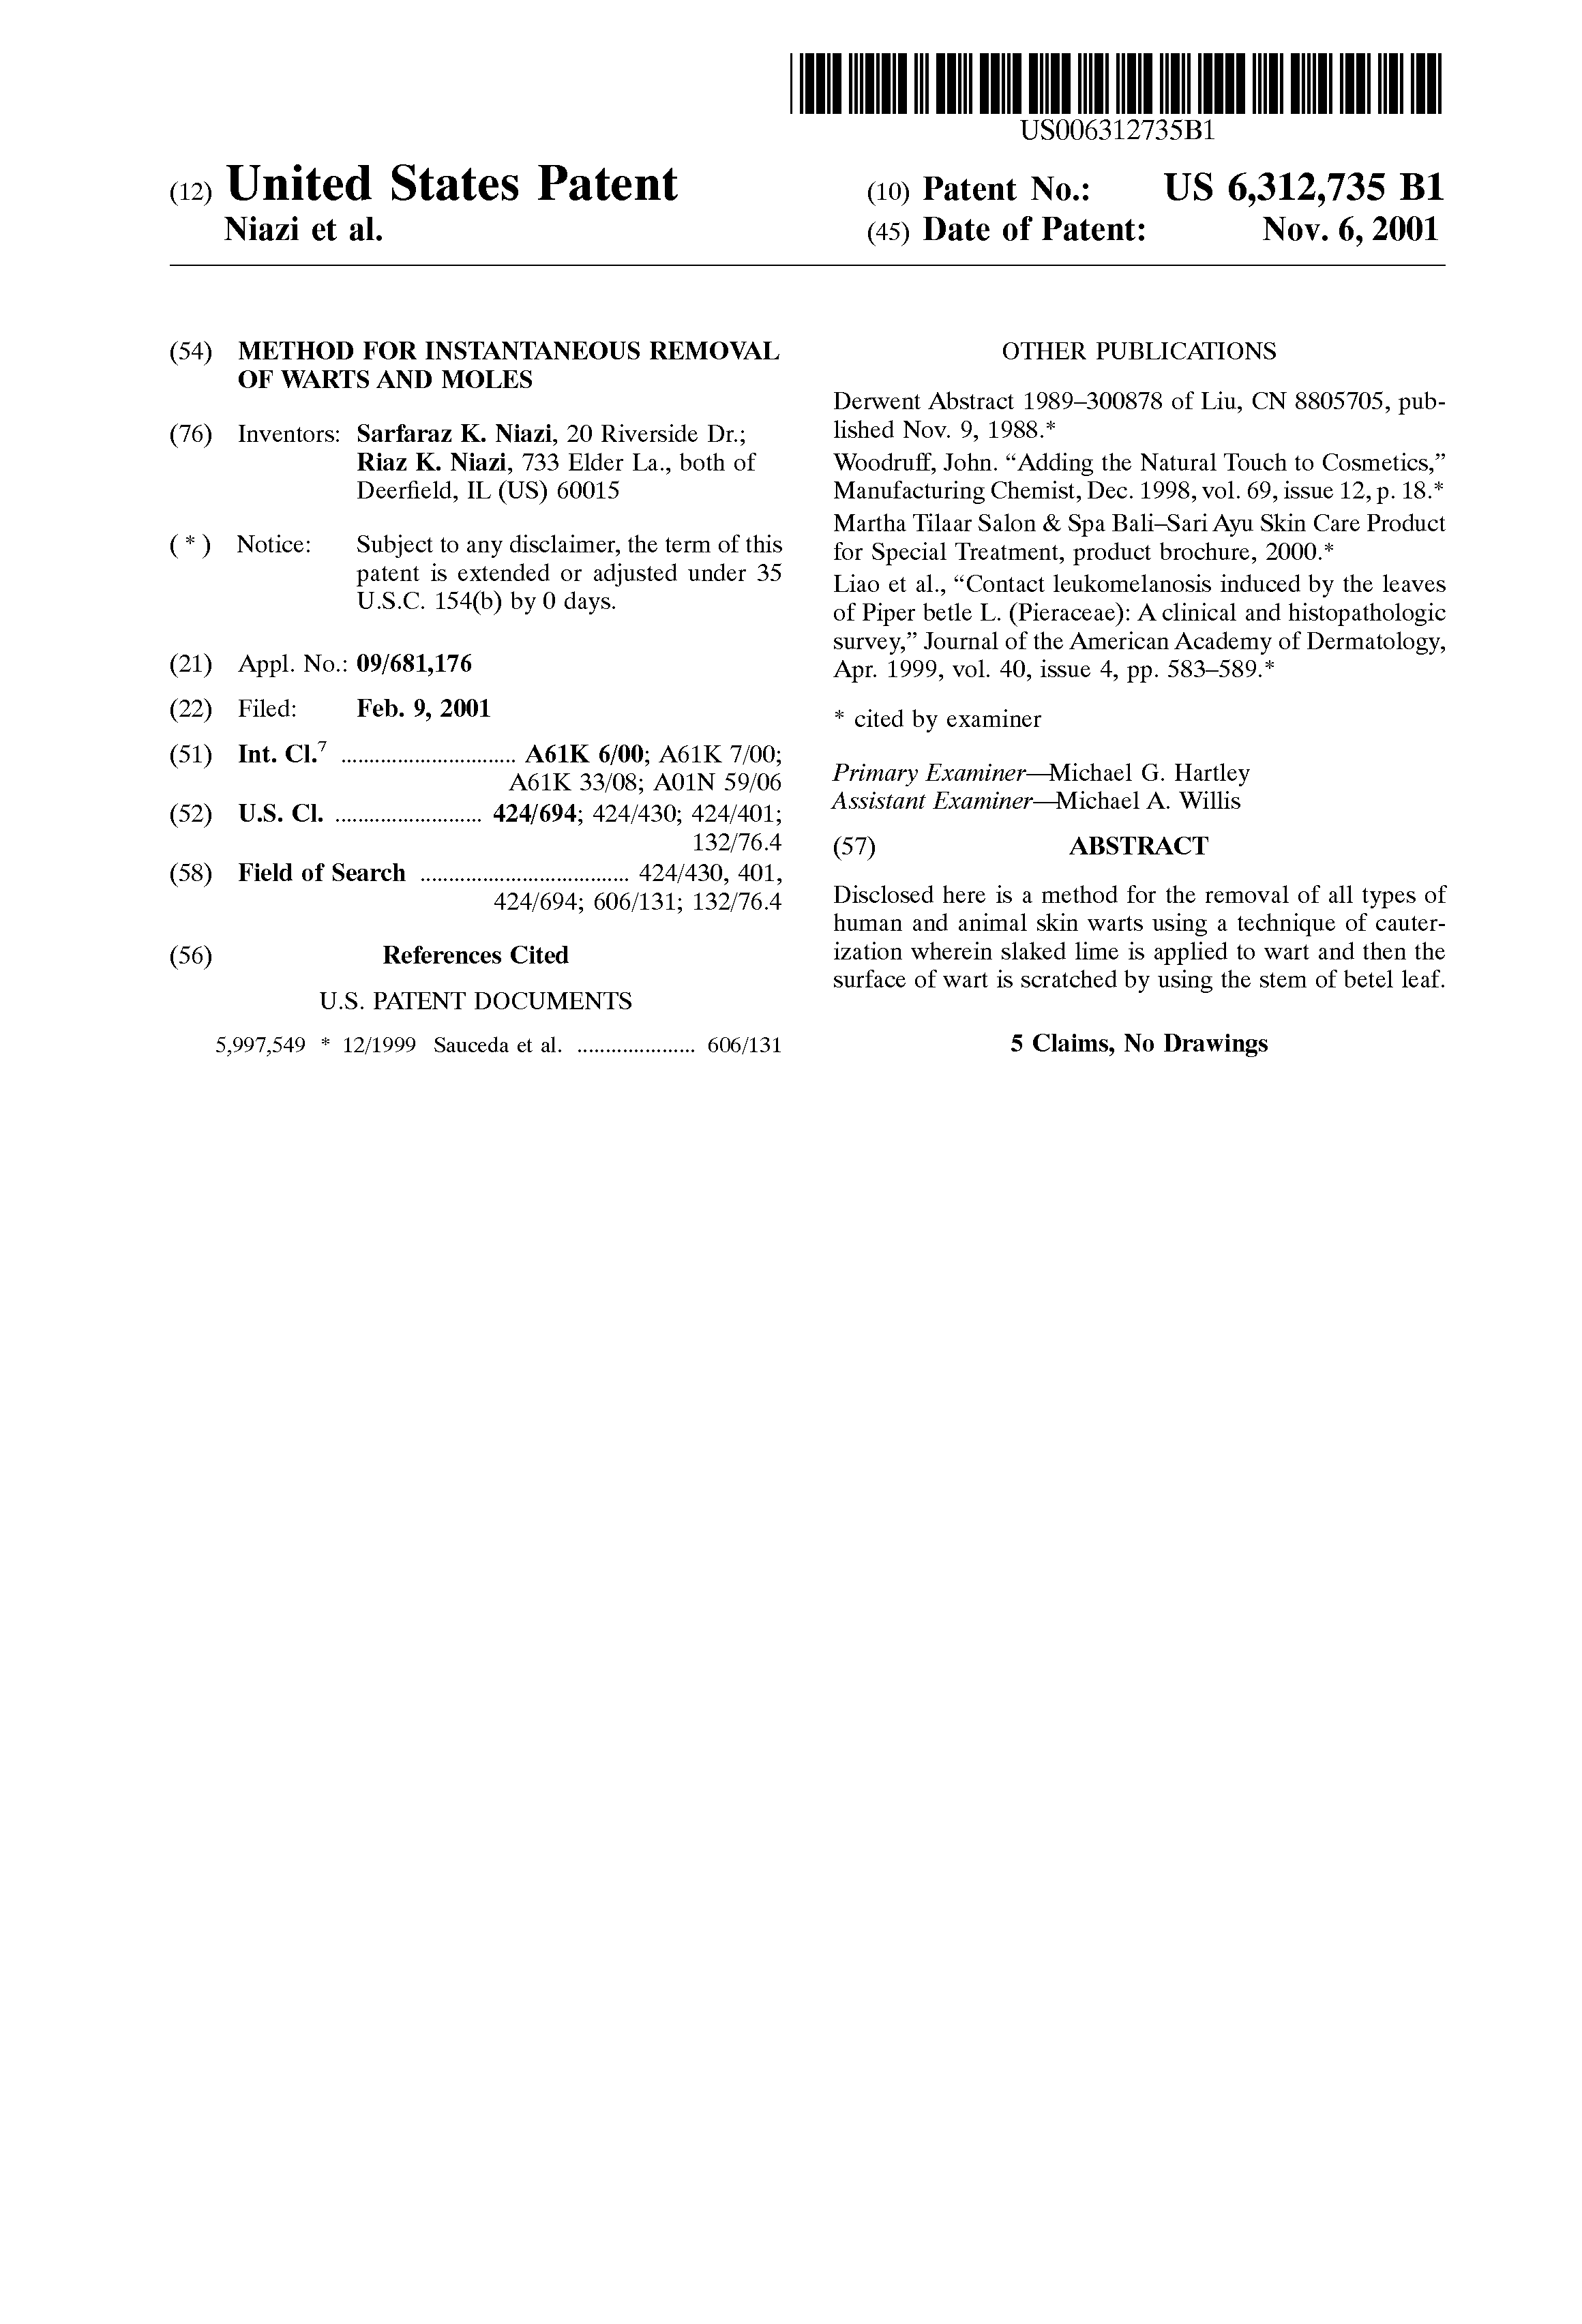 US 6312735 B1 - Method For Instantaneous Removal Of Warts And Moles